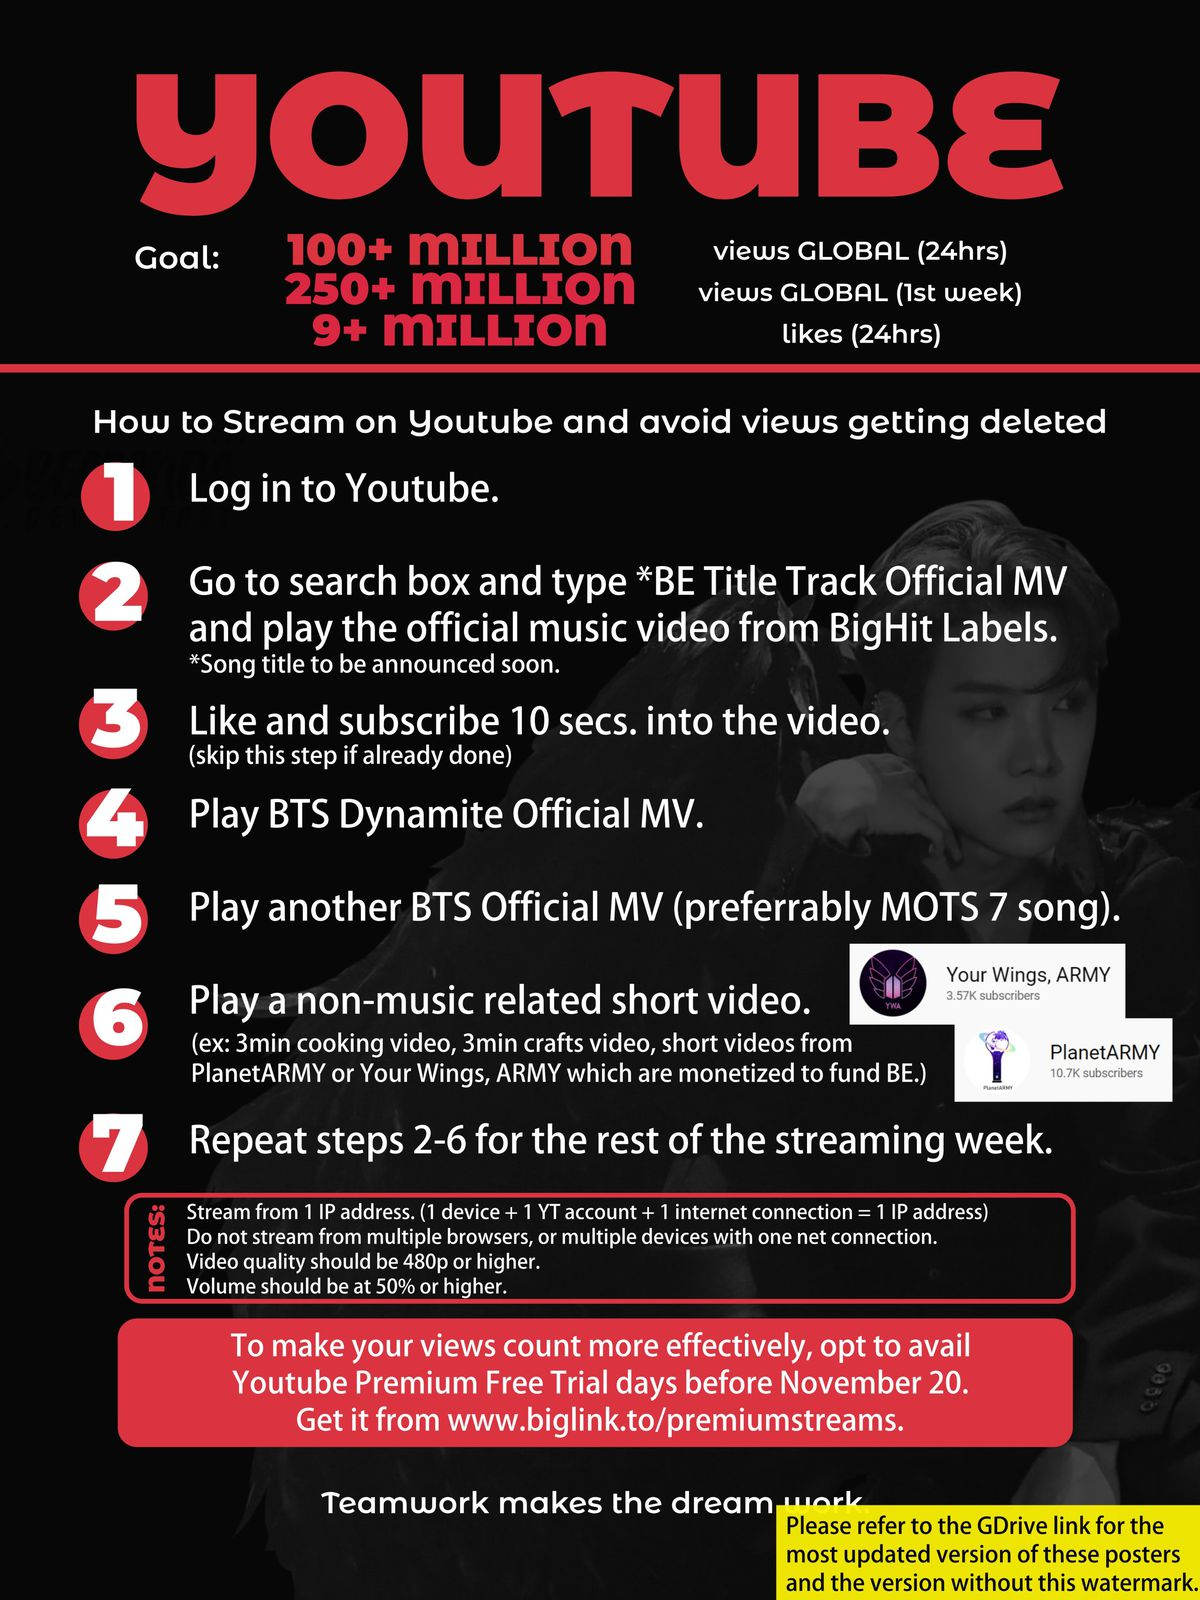 A list of streaming goals set by fans of BTS and instructions on how to meet them.